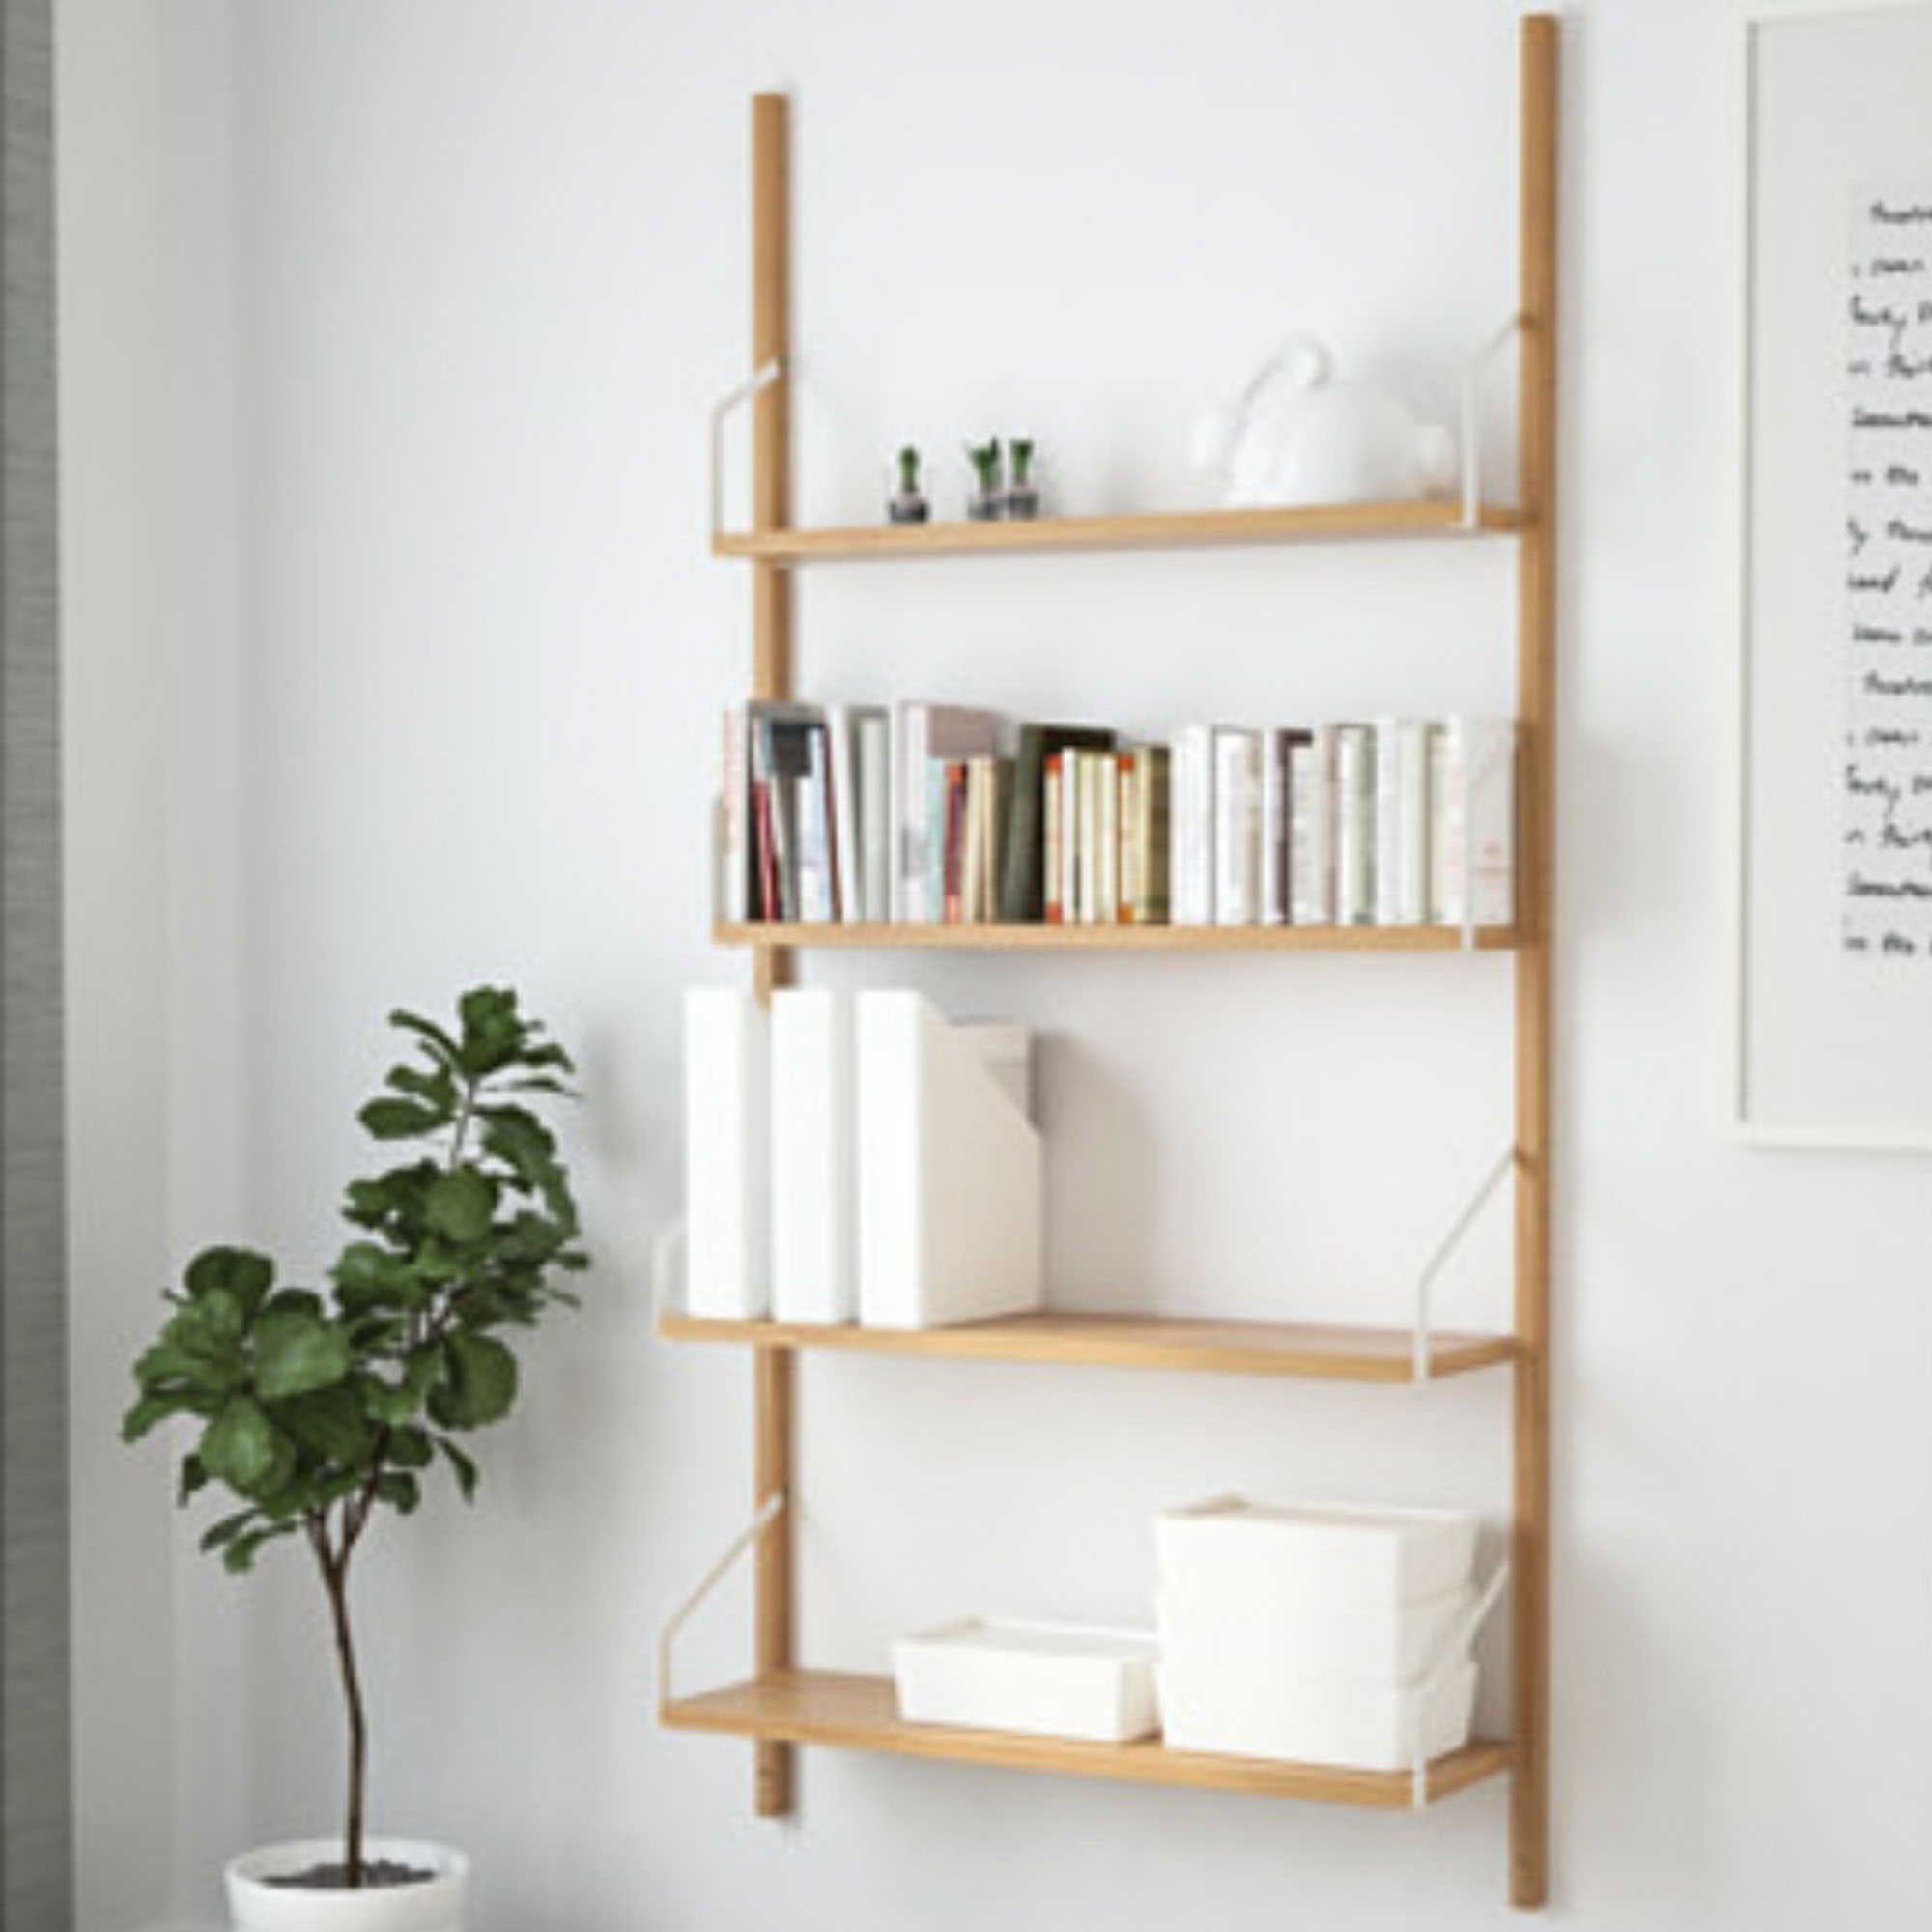 Ikea Wall Shelves Hack